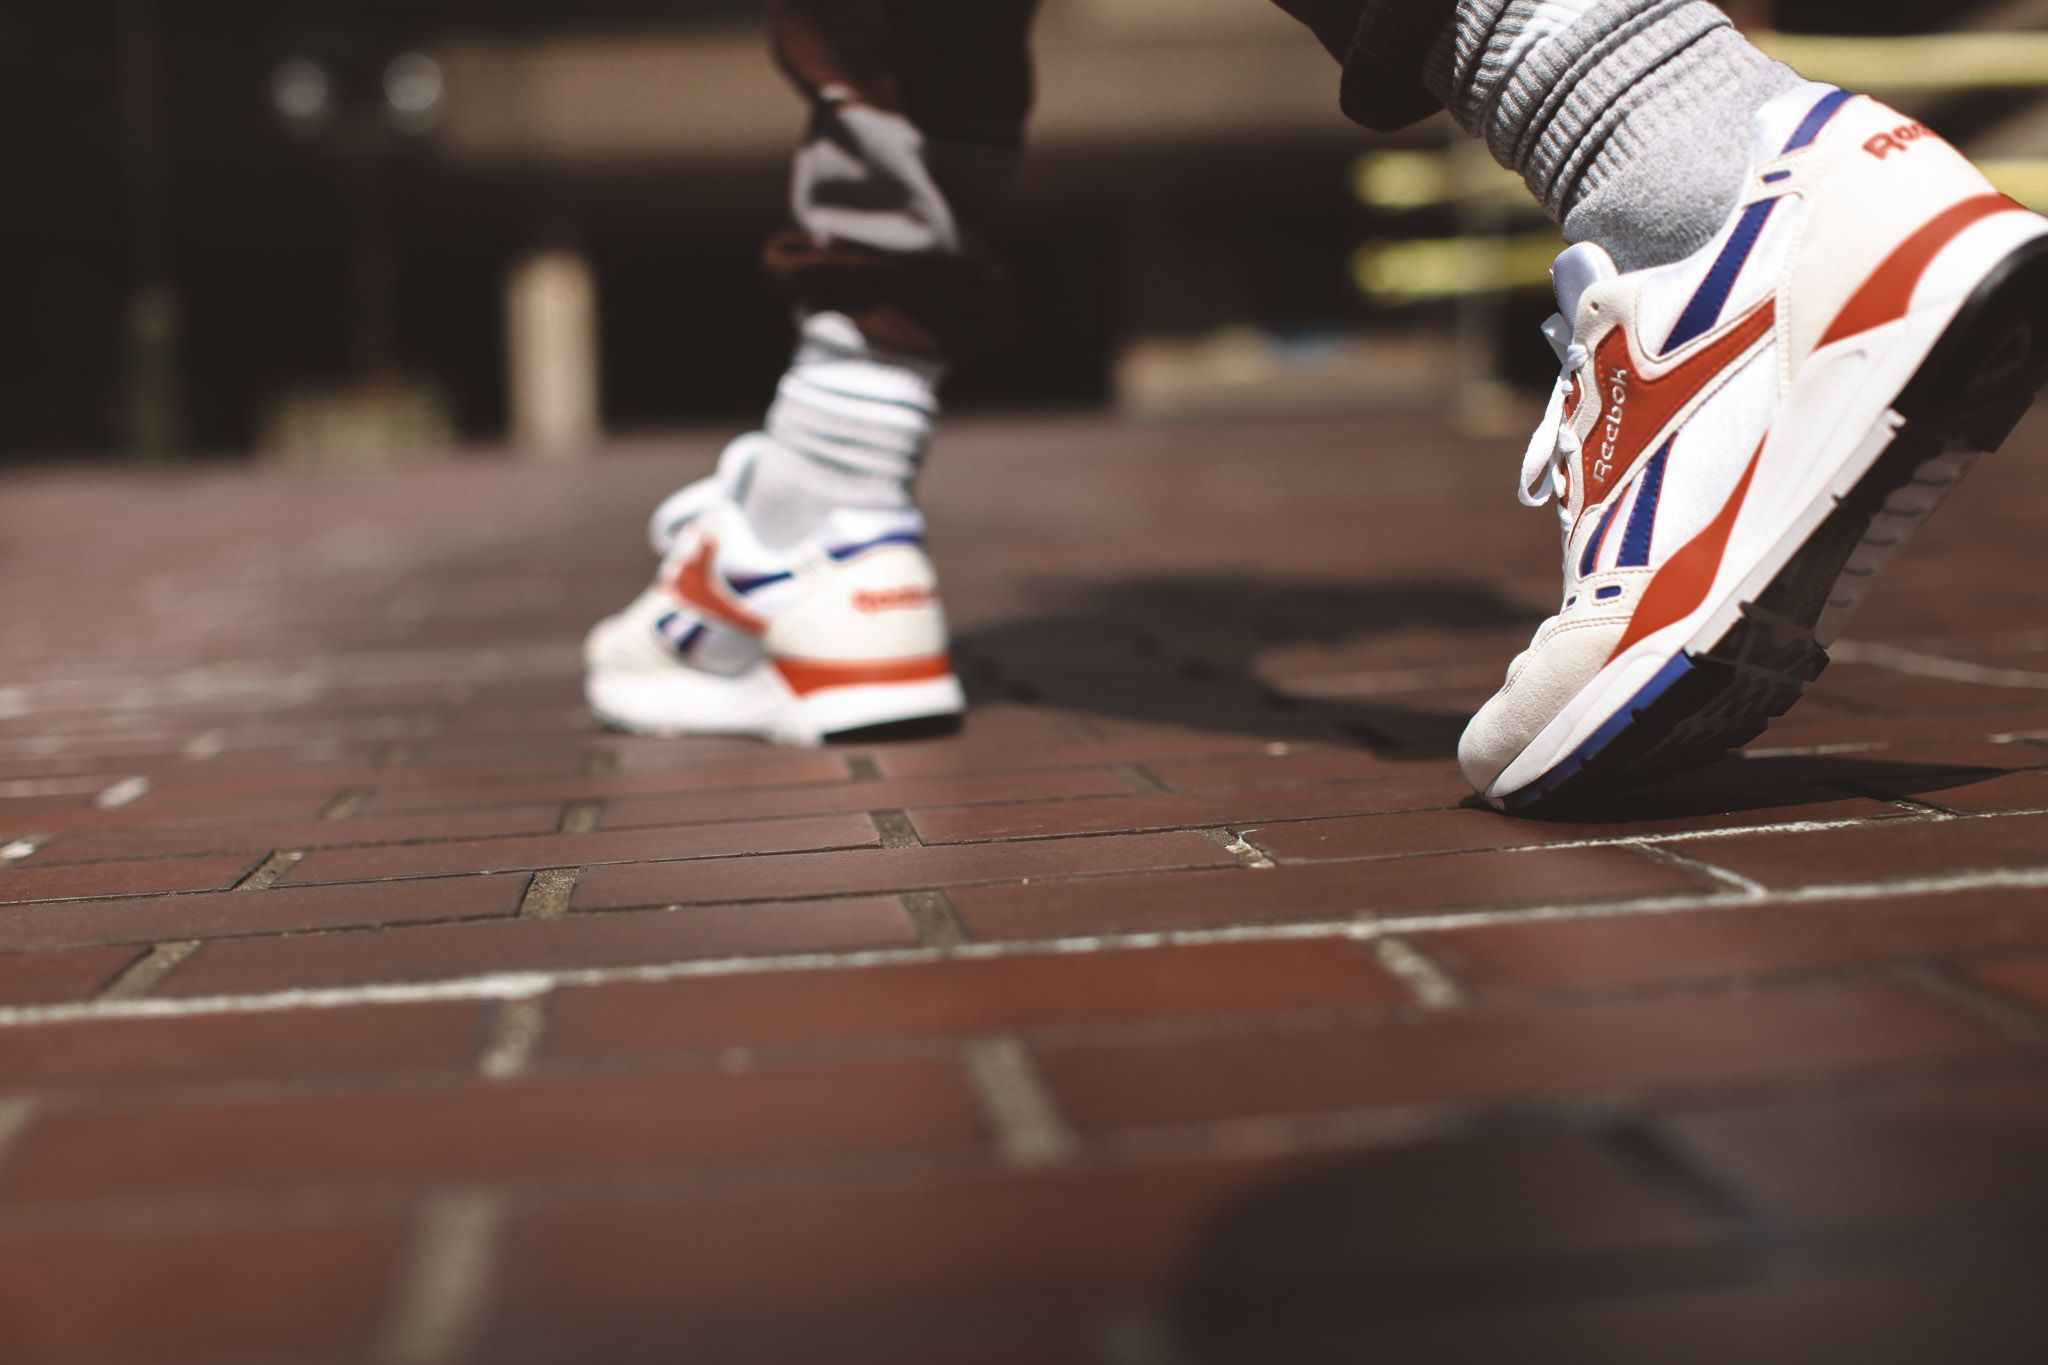 Reebok Classic – Reserve Apparel Collection,  #lifestyle #ReebokClassic #ReserveApparelCollection, #agpos, #sneaker, #sneakers, #sneakerhead, #solecollector, #sneakerfreaker,  #nicekicks, #kicks, #kotd, #kicks4eva #kicks0l0gy, #kicksonfire, #womft, #walklikeus, #schuhe, #turnschuhe, #yeezy, #nike, #adidas, #puma, #asics, #newbalance #jordan, #airjordan, #kicks